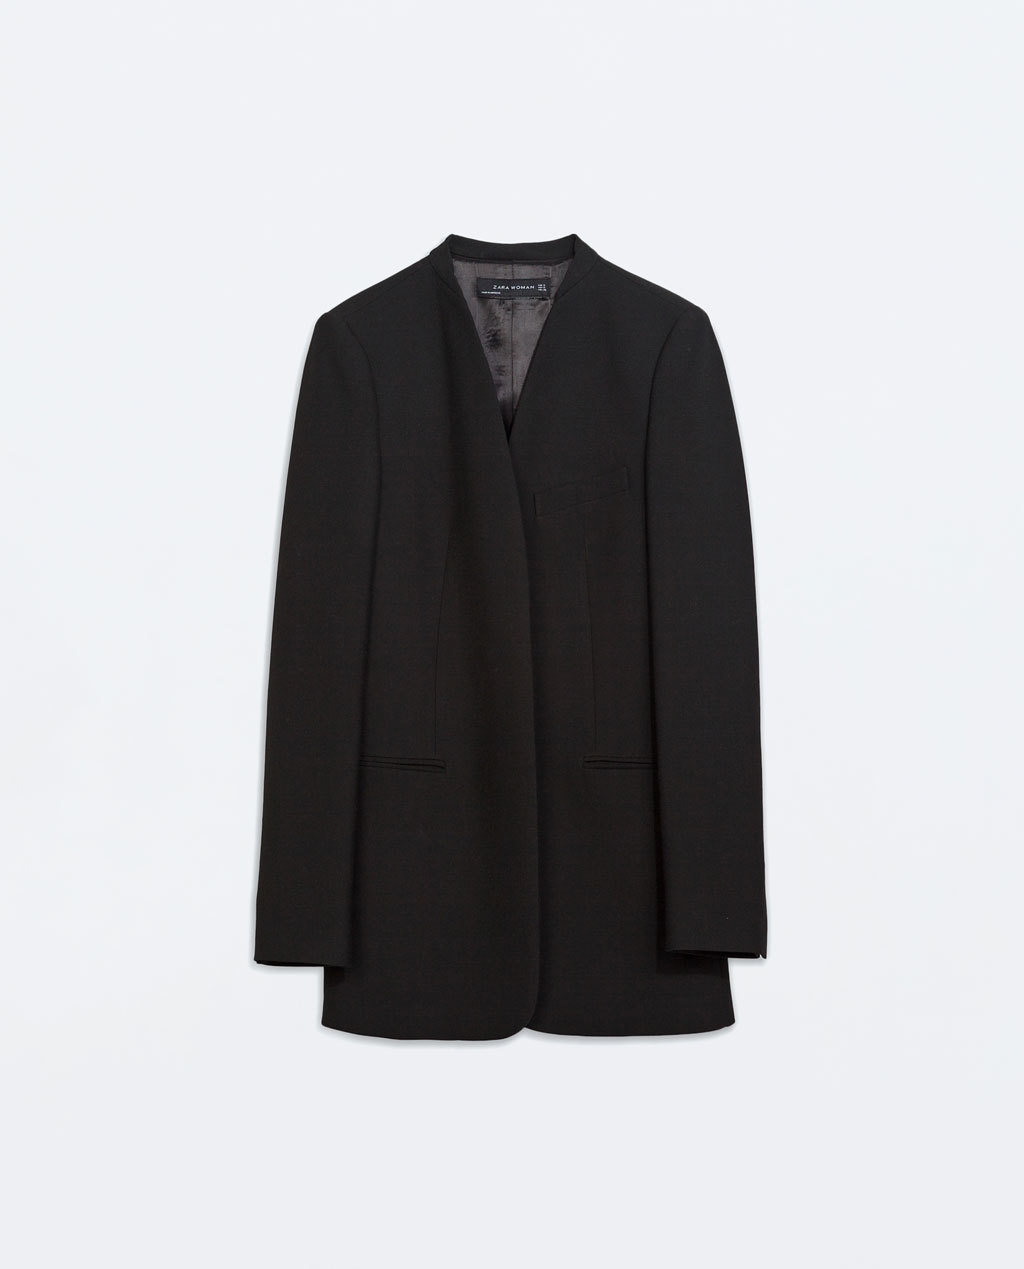 Collarless Frock Coat - pattern: plain; length: below the bottom; collar: round collar/collarless; style: single breasted; predominant colour: black; occasions: casual, work, creative work; fit: straight cut (boxy); fibres: polyester/polyamide - stretch; back detail: back vent/flap at back; sleeve length: long sleeve; sleeve style: standard; texture group: crepes; collar break: low/open; pattern type: fabric; season: a/w 2014